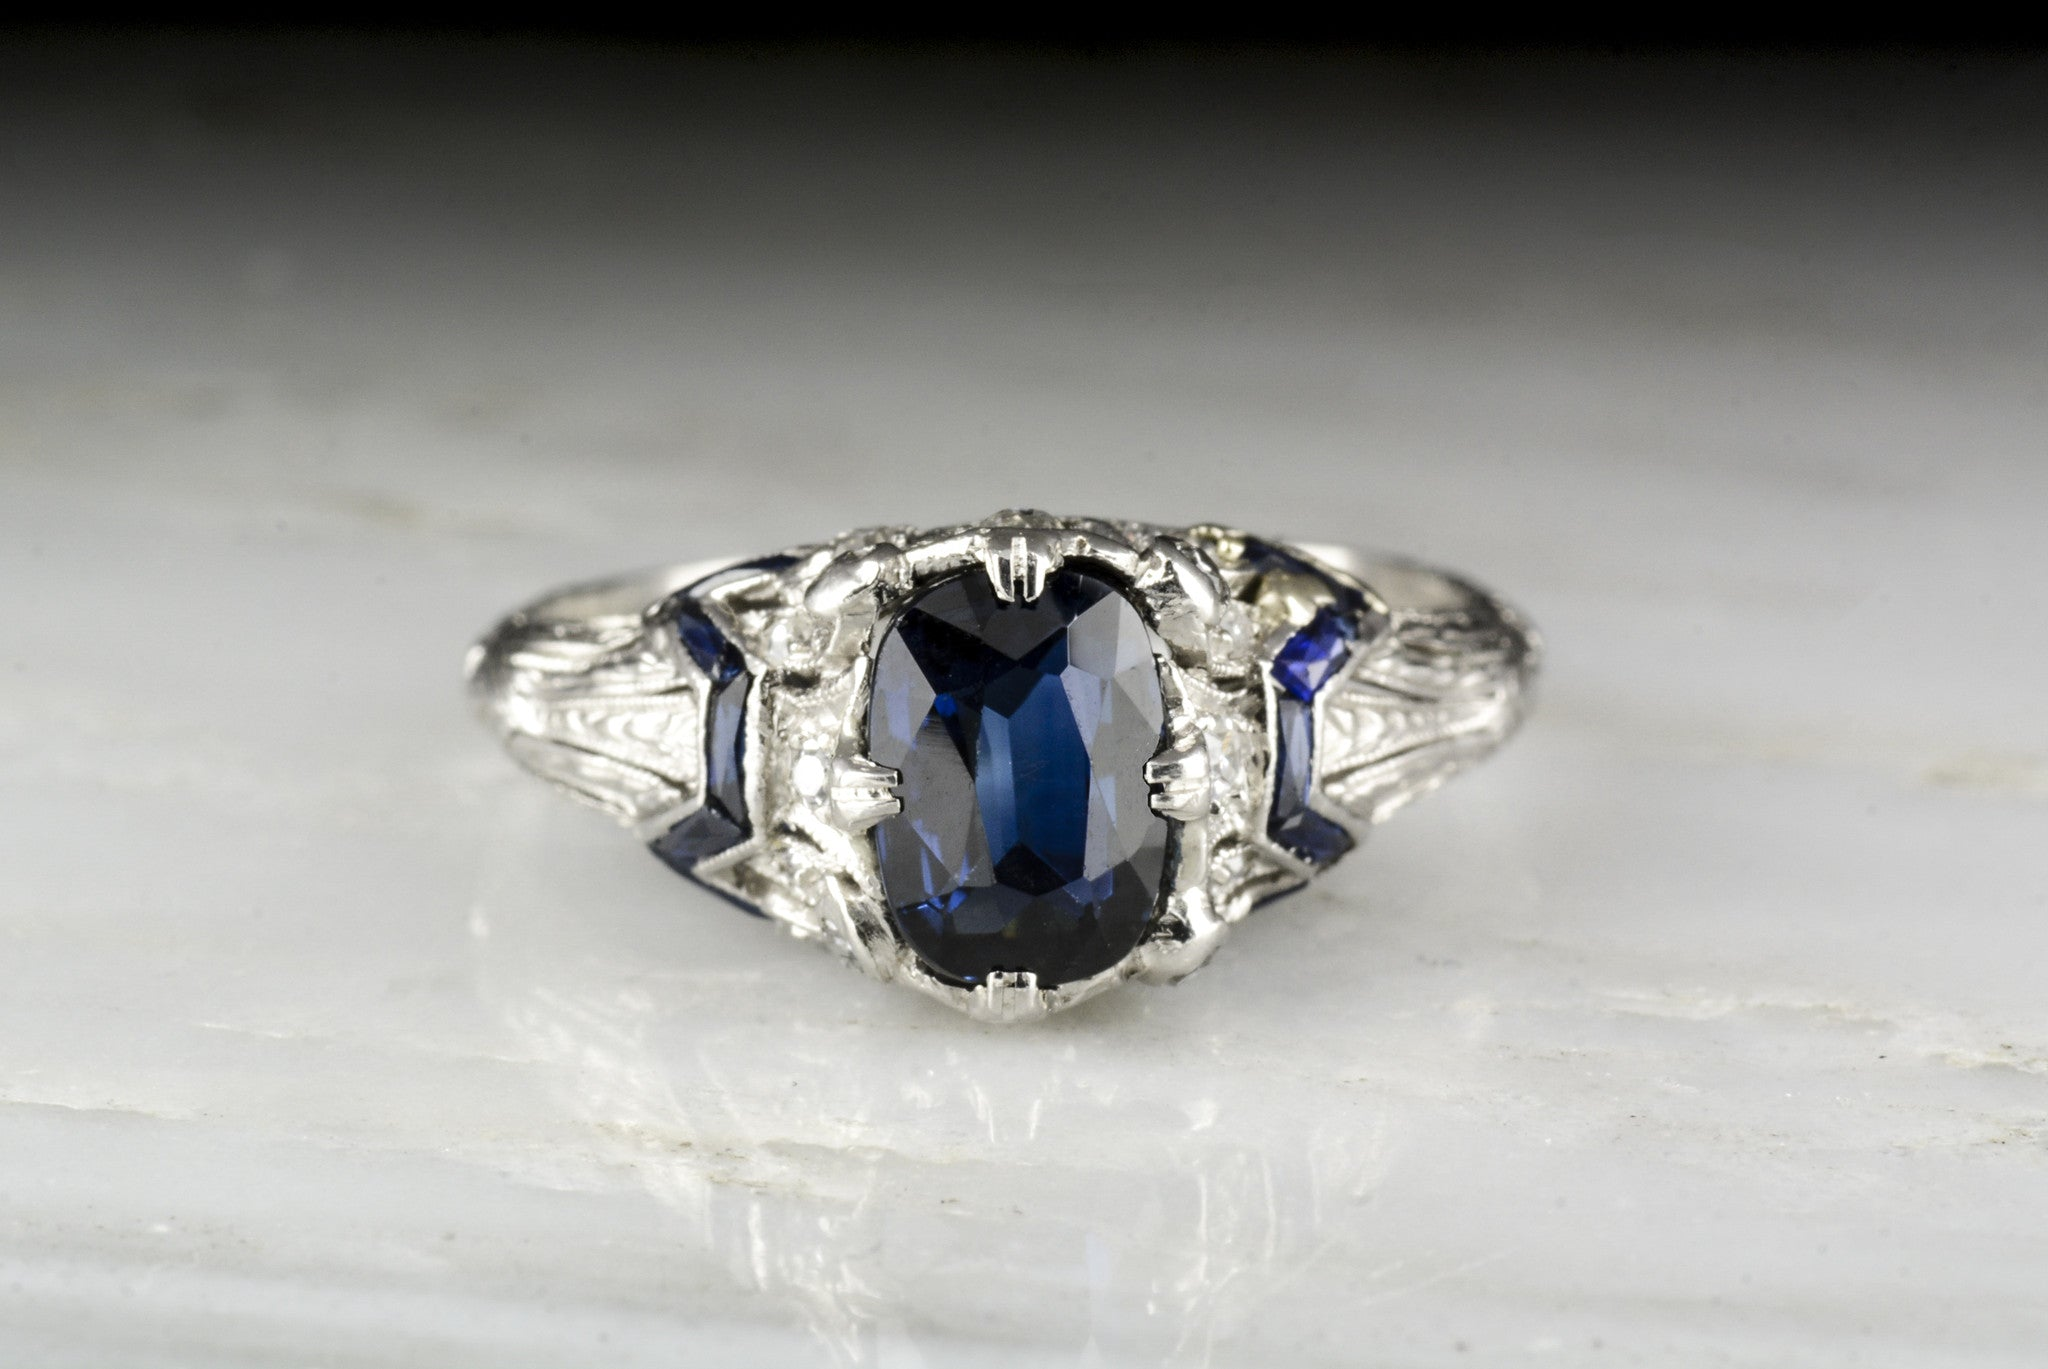 prong engagement diamonds ring double cut cushion solitaire with sapphire blue or products on finger